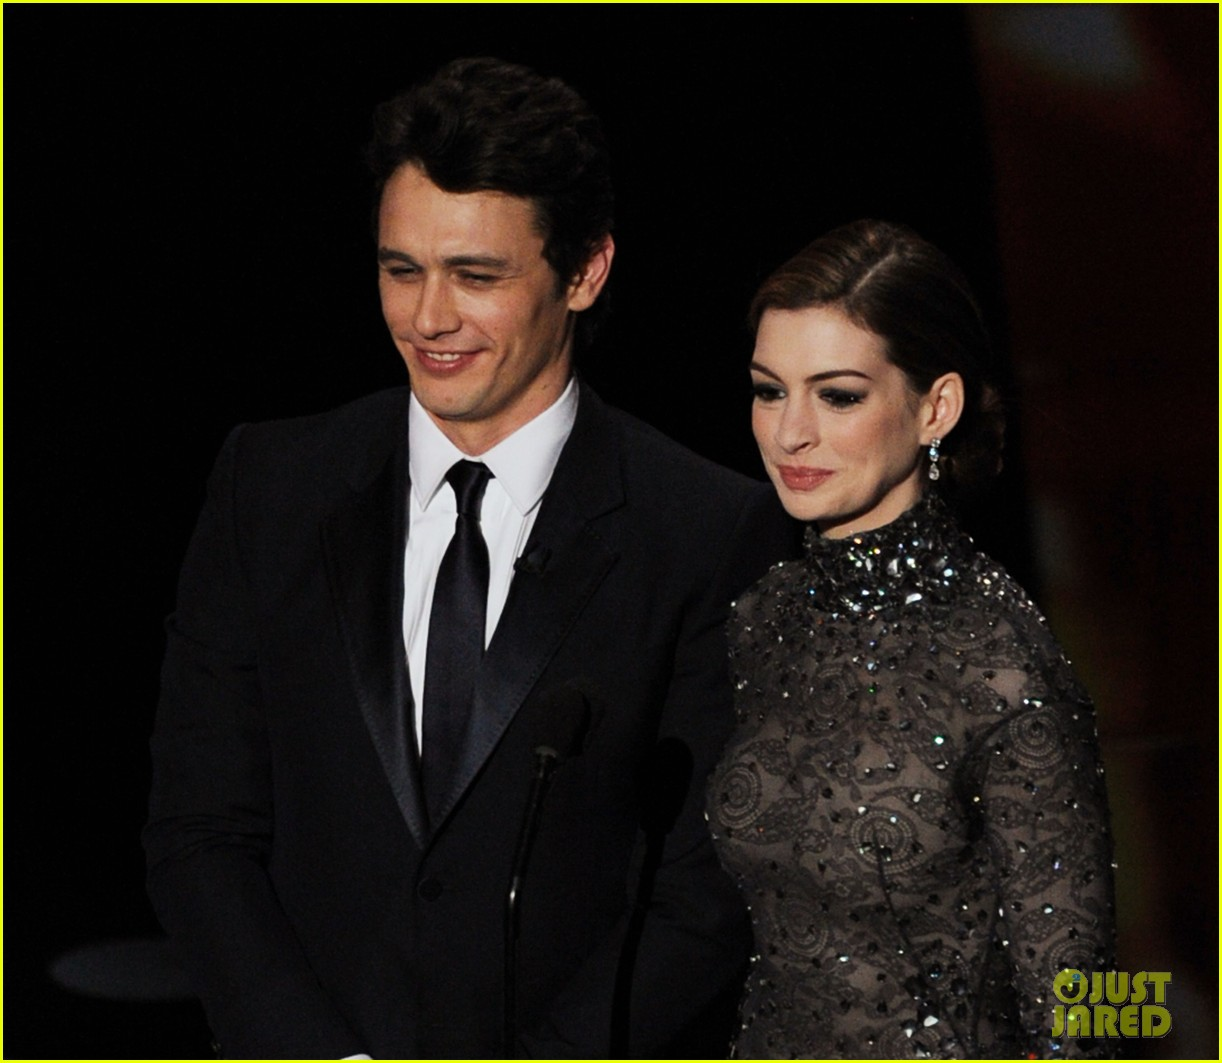 Anne Hathaway James Franco: Anne Hathaway Mocks Herself Over Oscars 2011 Hosting Gig